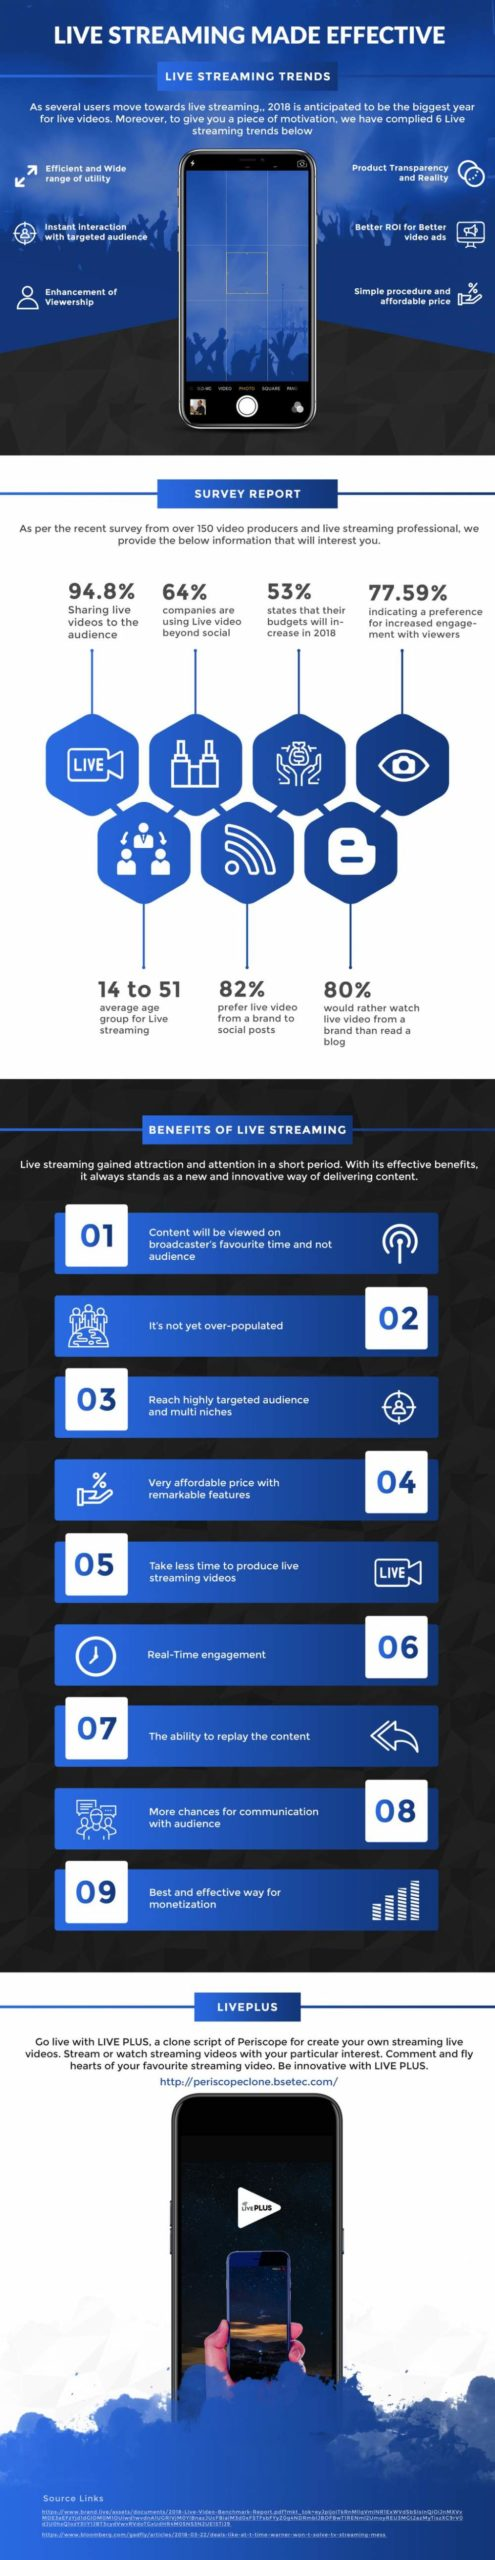 Live-Streaming-Made-Effective-With-LivePlus